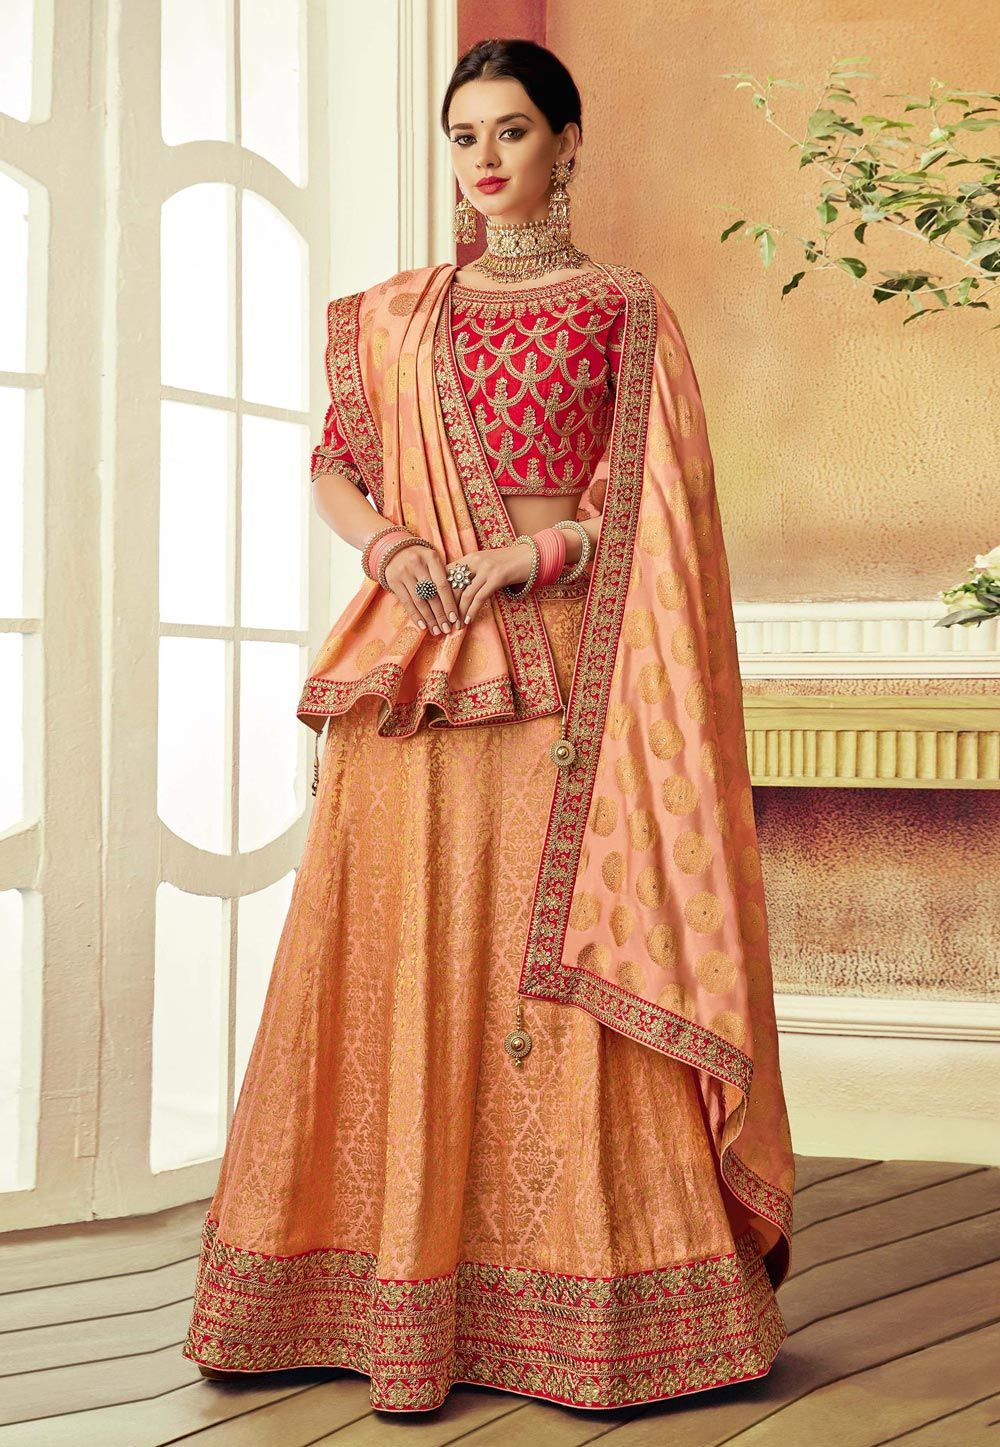 16992f8ac Buy Peach Brocade Embroidered Lehenga Choli 158651 online at best price  from vast collection of Lehenga Choli and Chaniya Choli at  Indianclothstore.com.